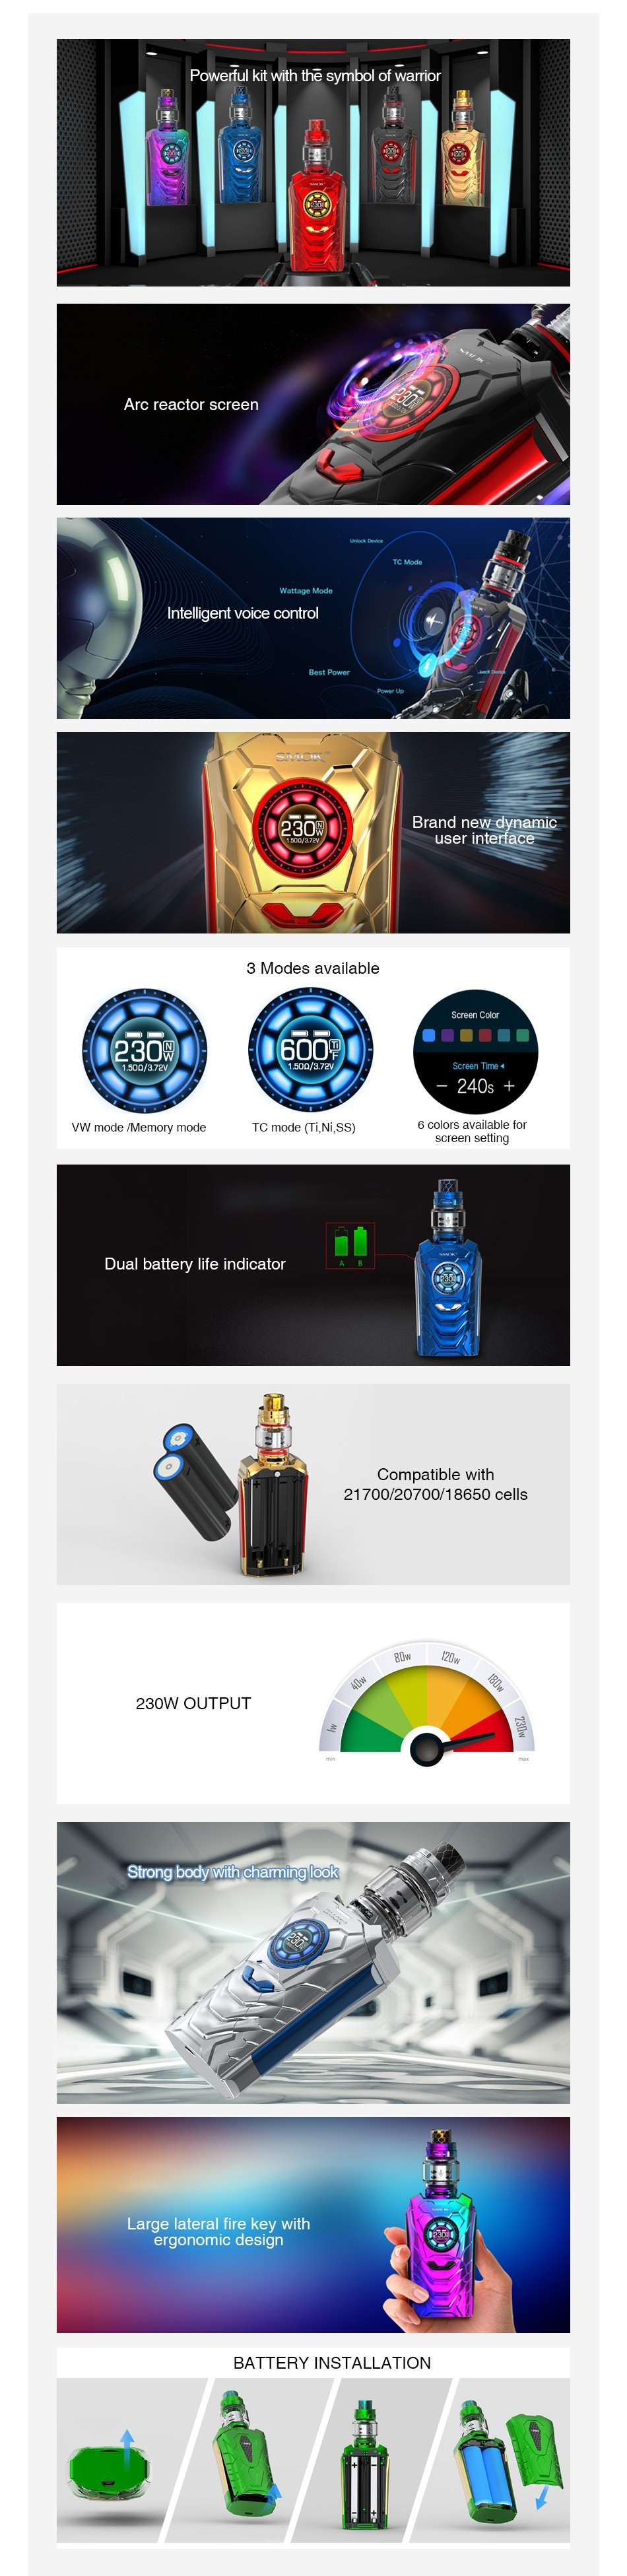 SMOK I-Priv 230W Voice Control TC Kit Powerful kit wit Arc reacto Intelligent voice contro   vw roils k  ots trID   TG IIo I    NI Ss  Dual battery life indicator 217002070018650cels 230W OUTPUT ergonomic design BATTERY INSTALLATION